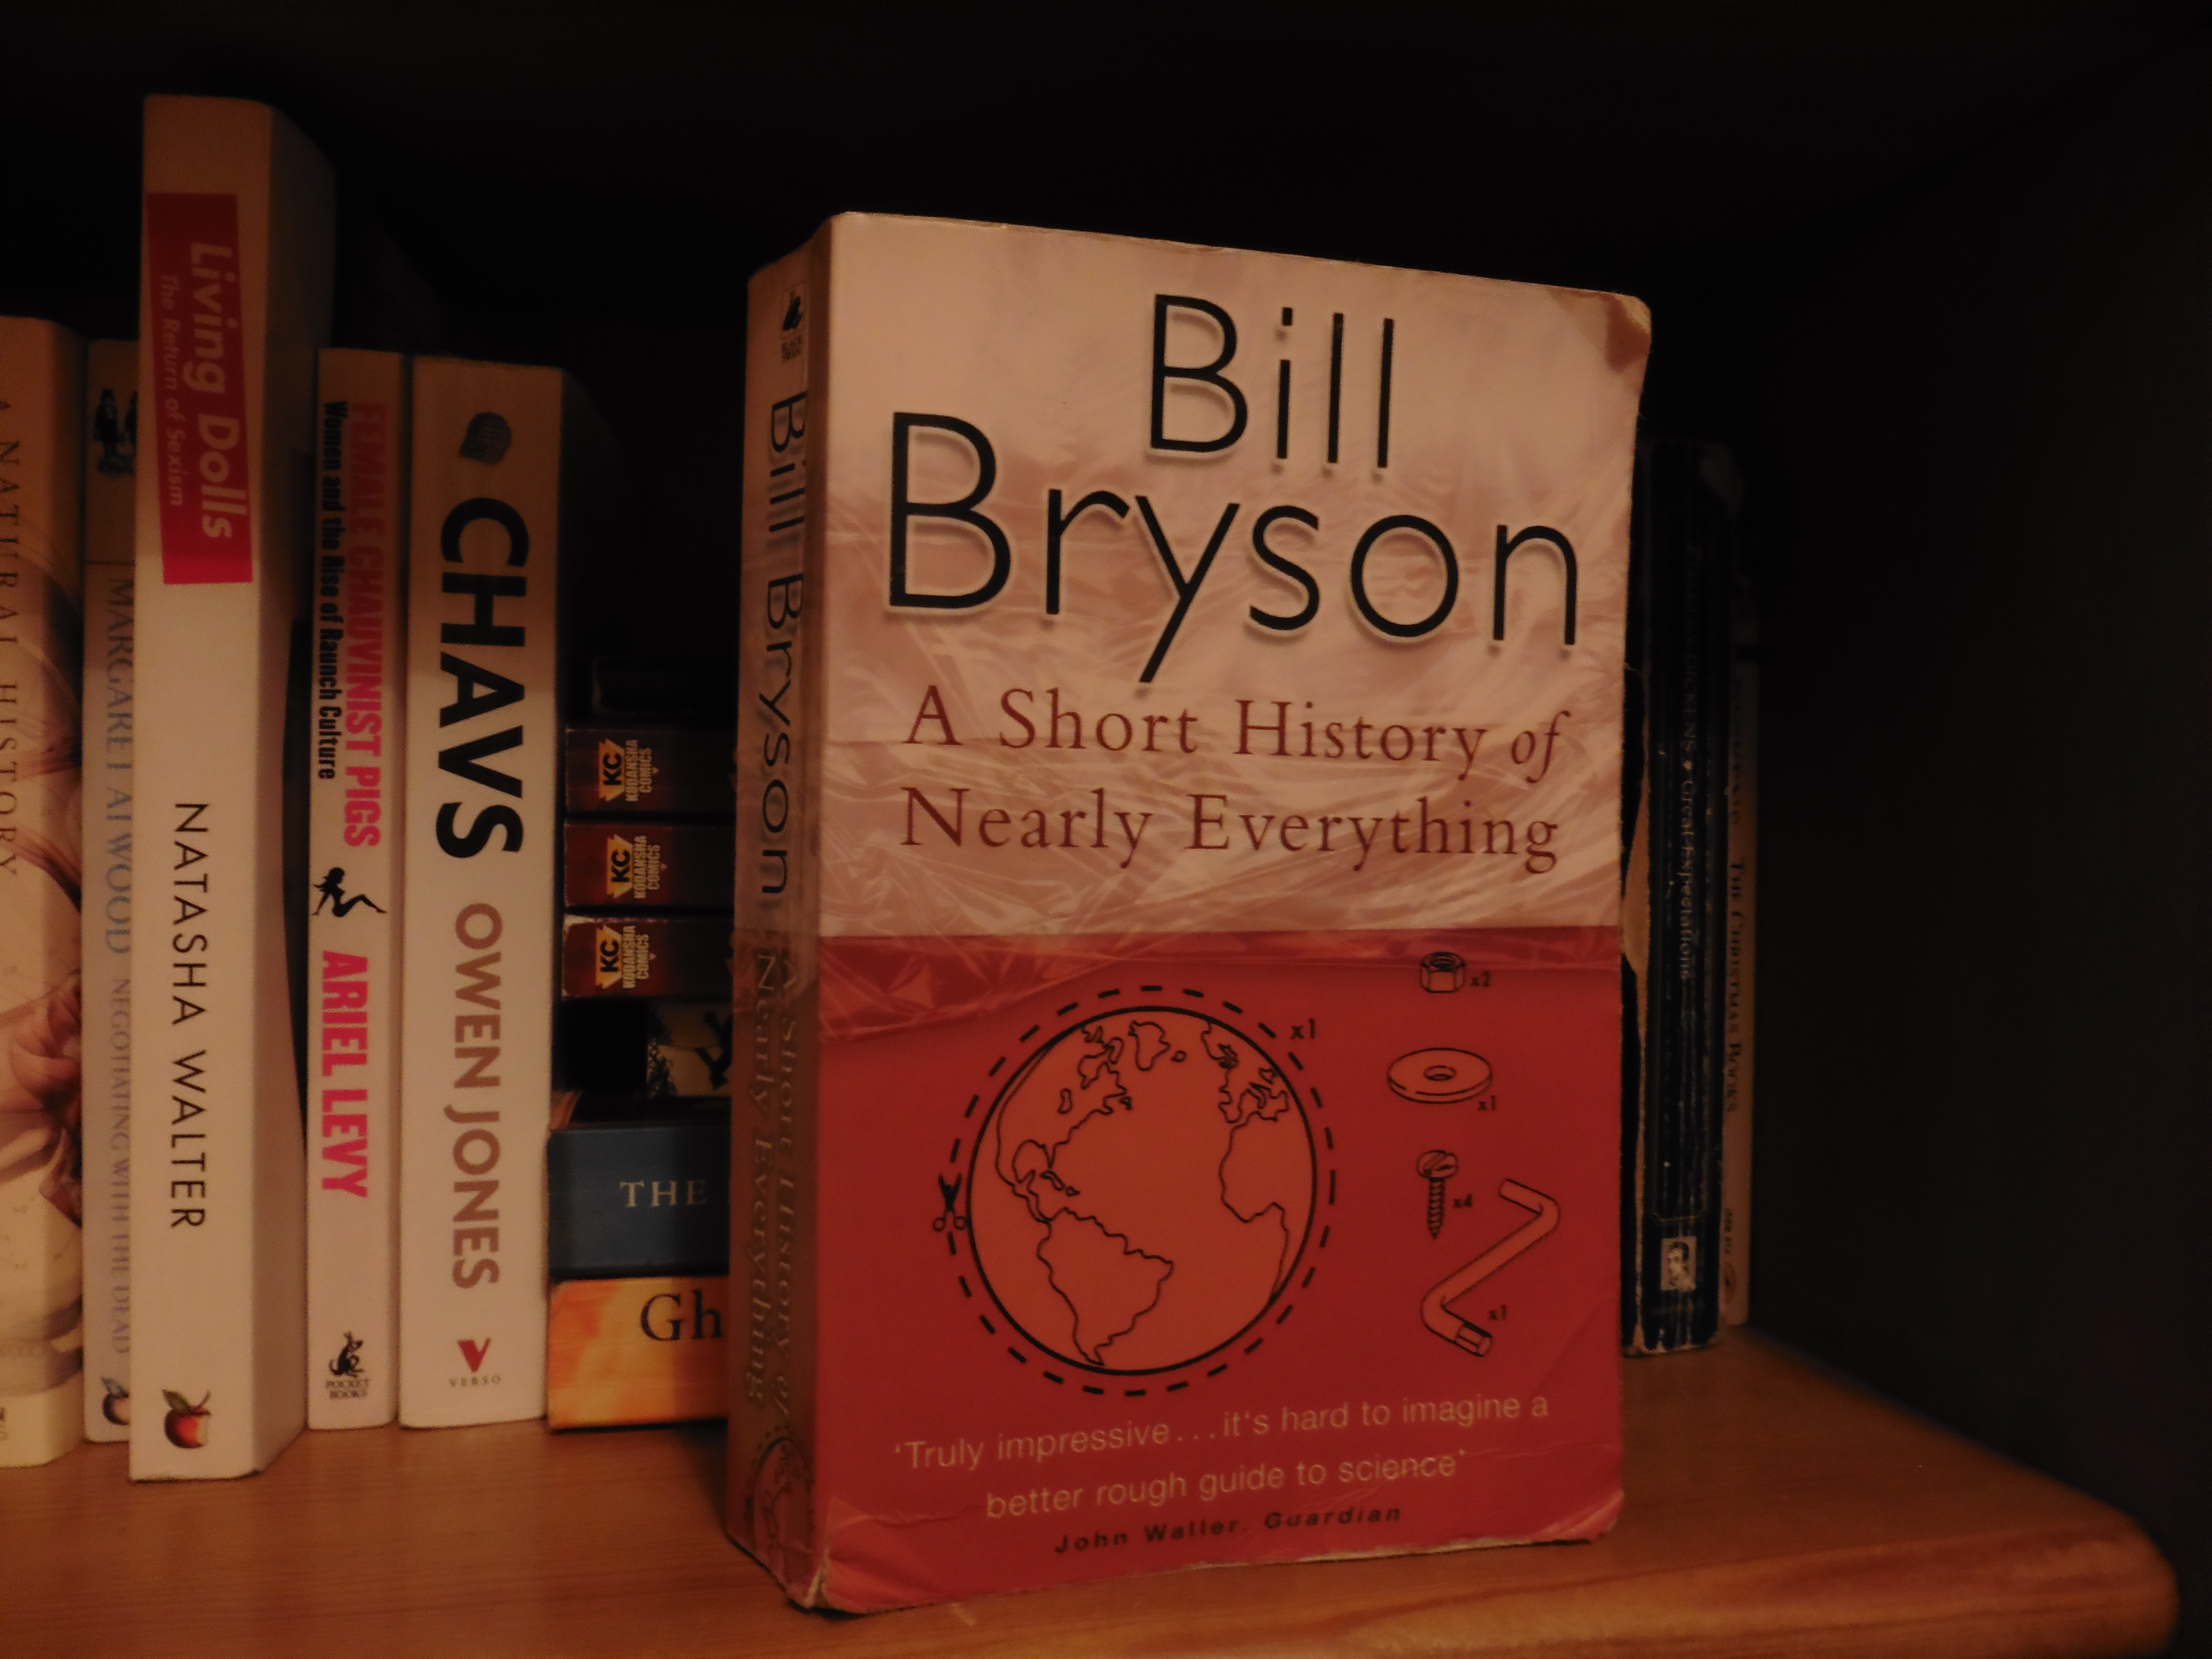 A Short History Of Nearly Everything This Book Is Over 10yrs Old Now But I Finally Got Around To Reading Although When Picked It Out Didnt Actually